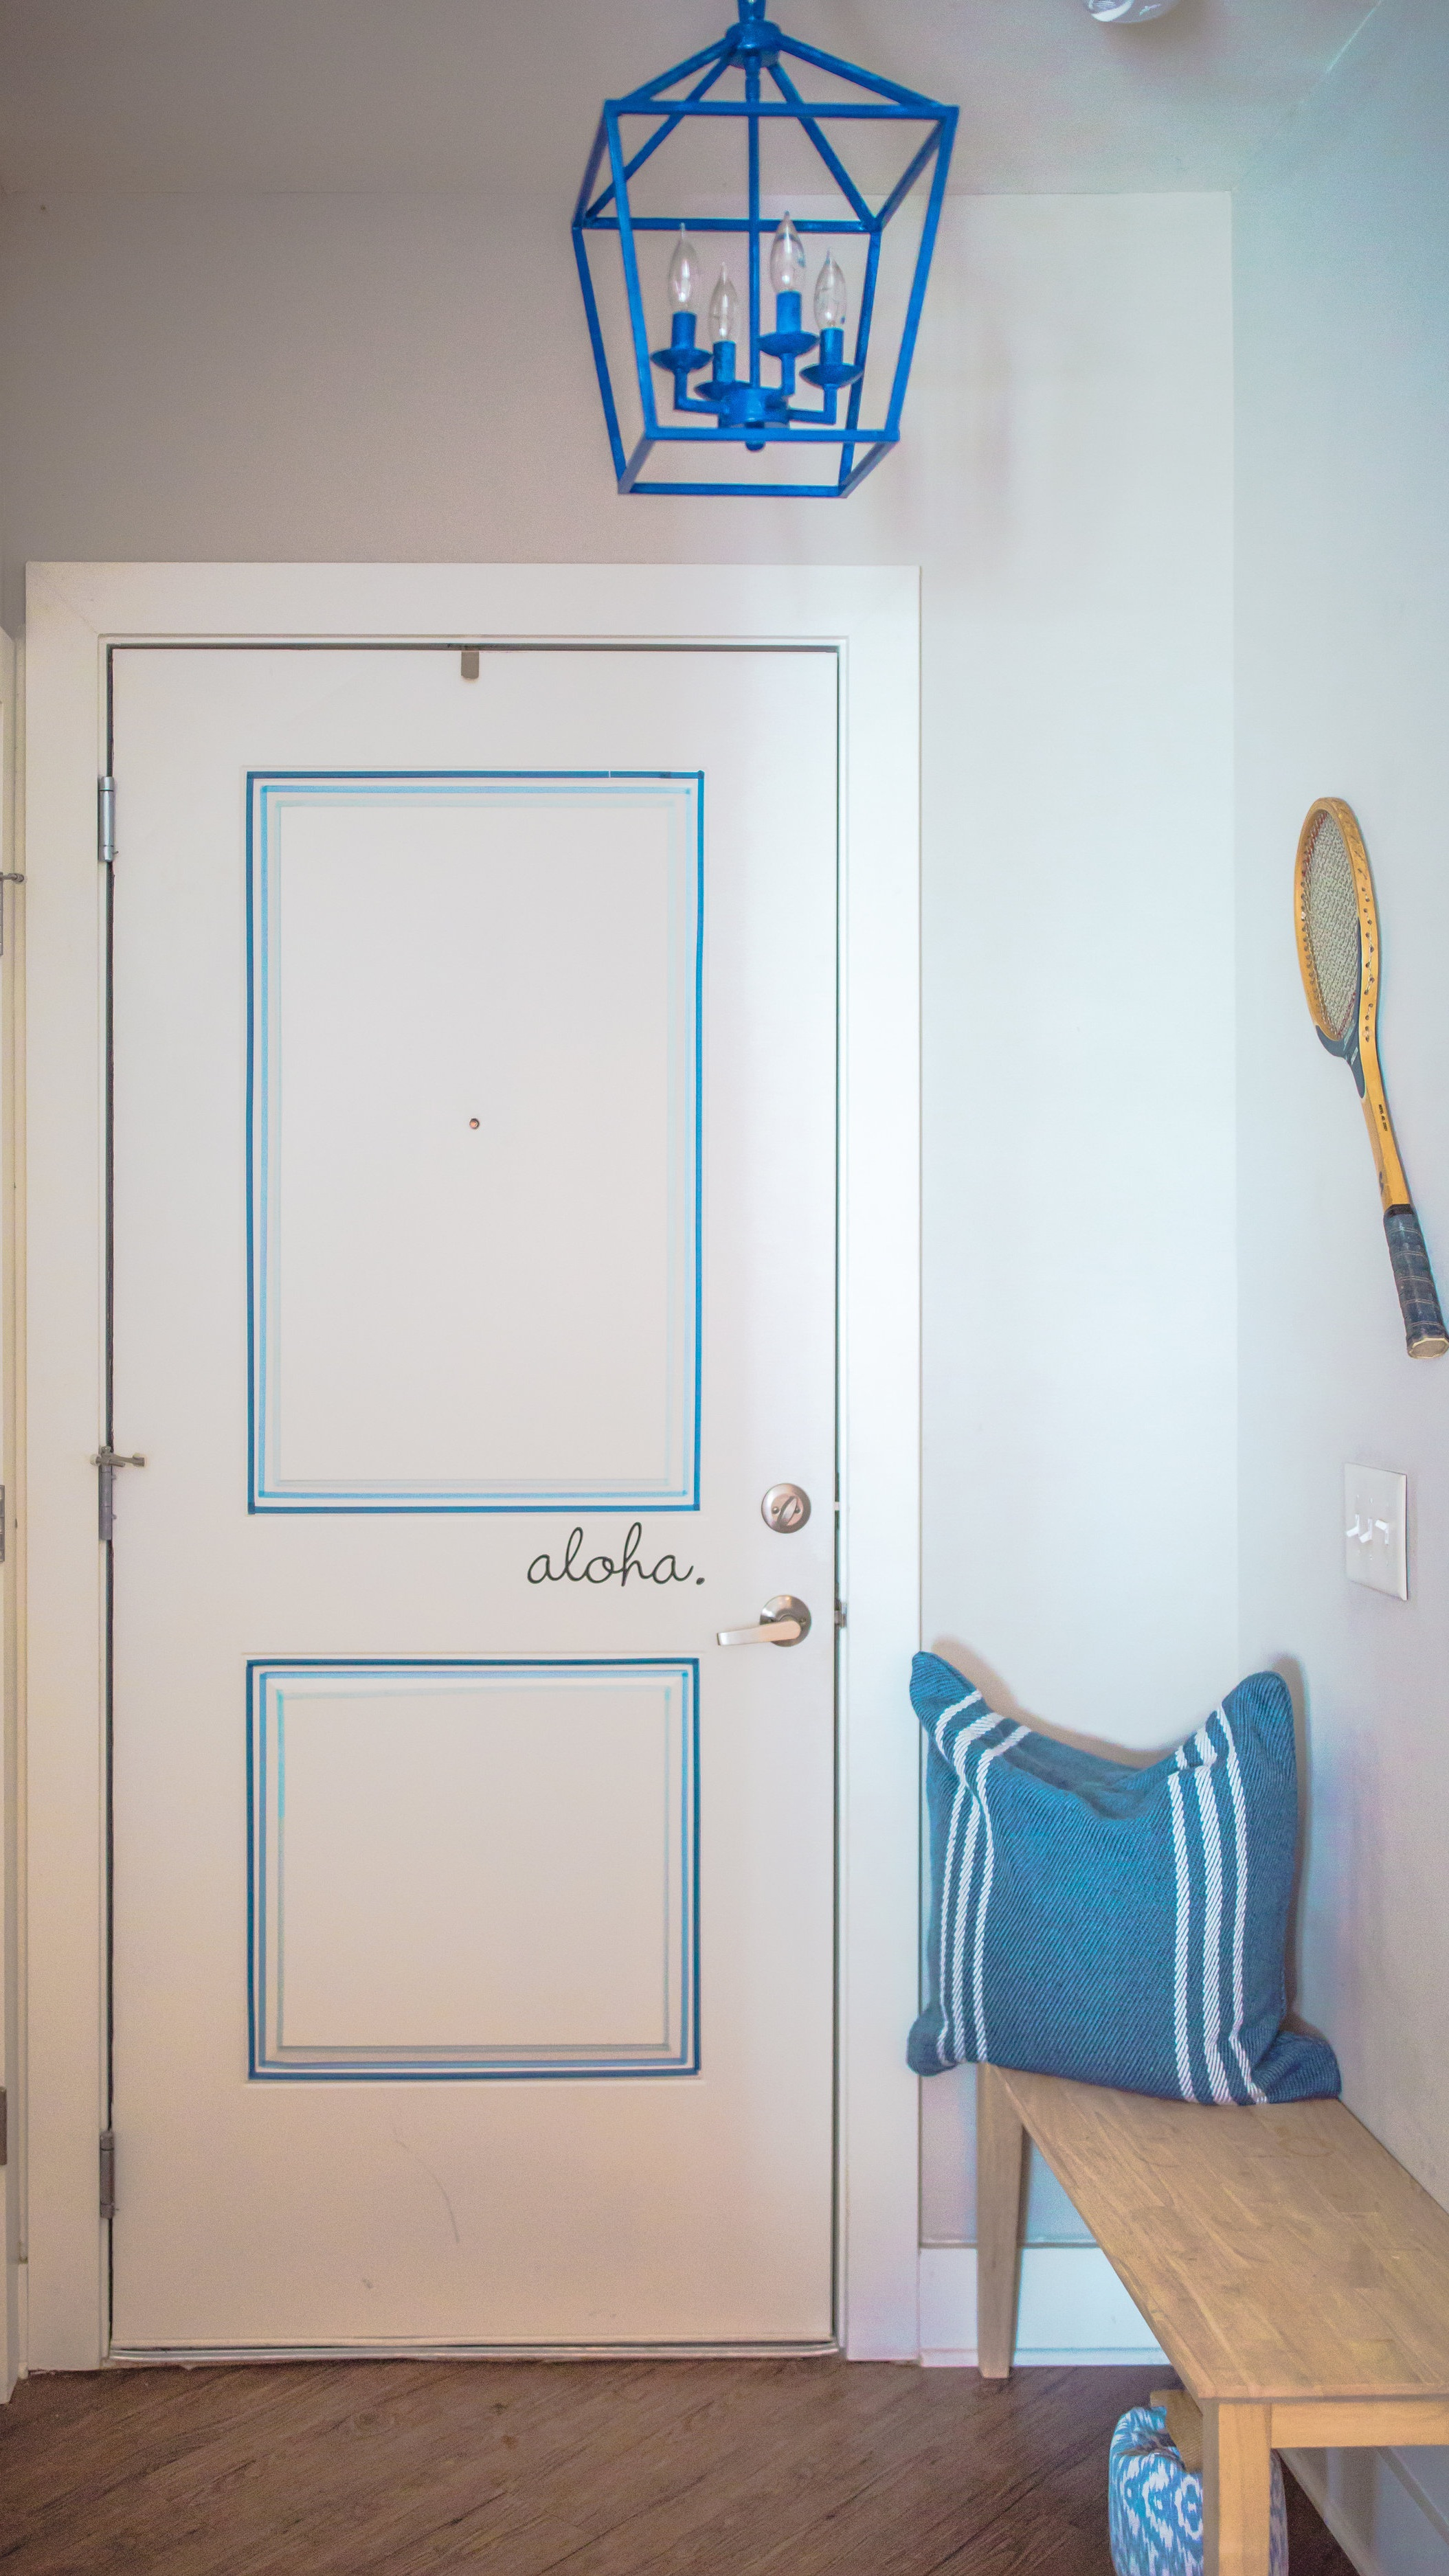 Charleston Project: Empty to Airbnb Plus in 8 Weeks